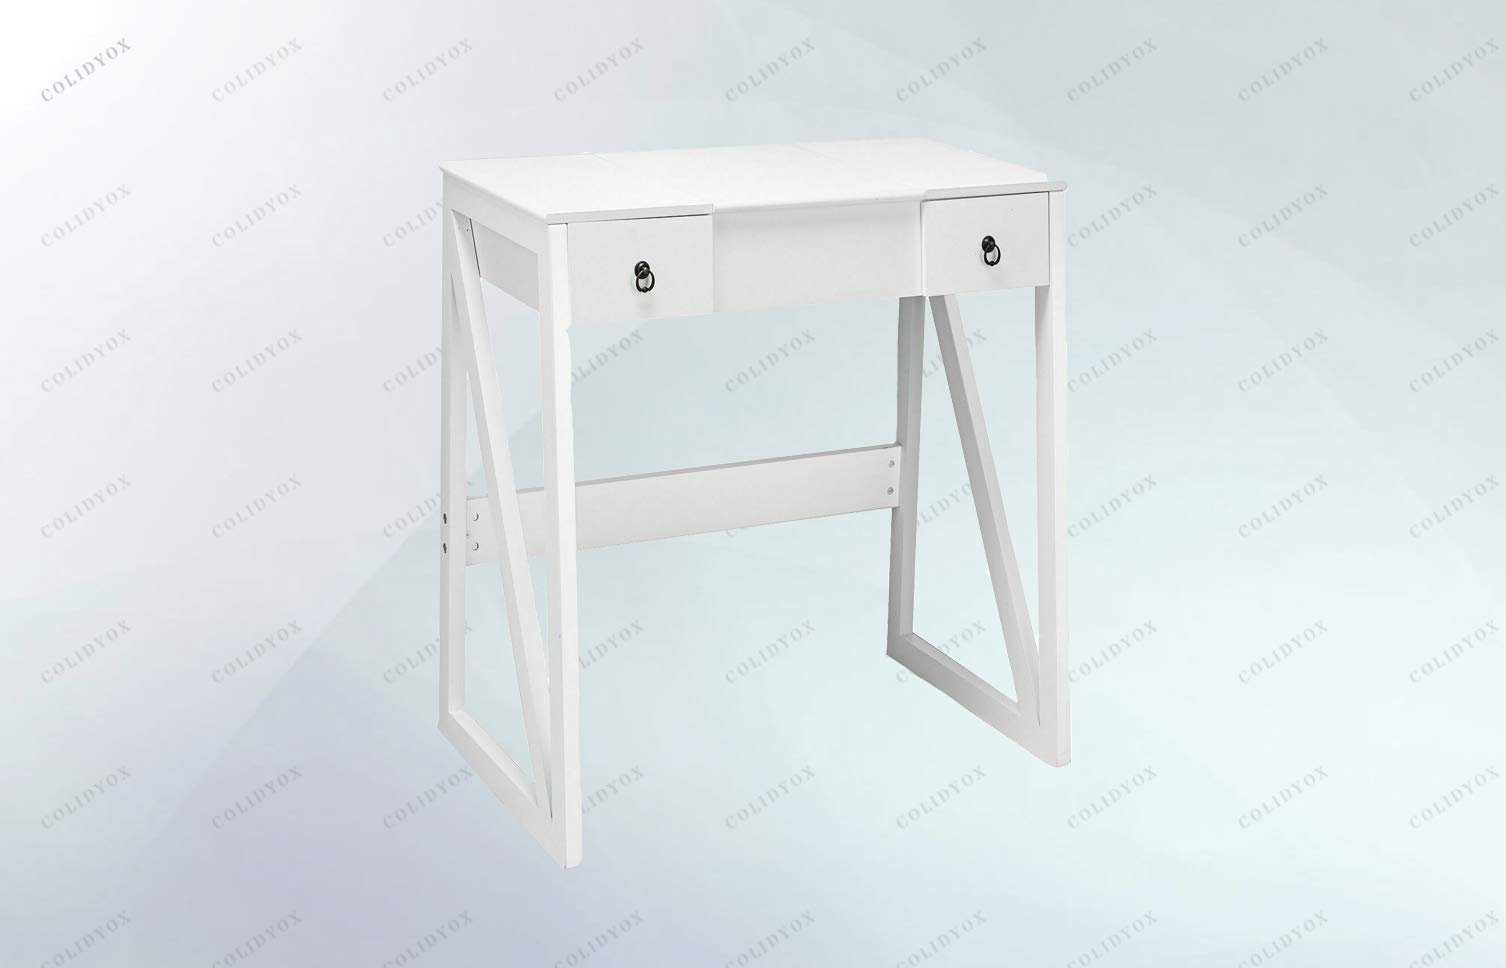 COLIDYOX>>>Vanity Dressing Table Set Flip Makeup Mirror Stool Furniture The Vanity Set is Multifunctional as a Writing Table with a flip Mirror on top. The Natural White Wood Style Vanity Table